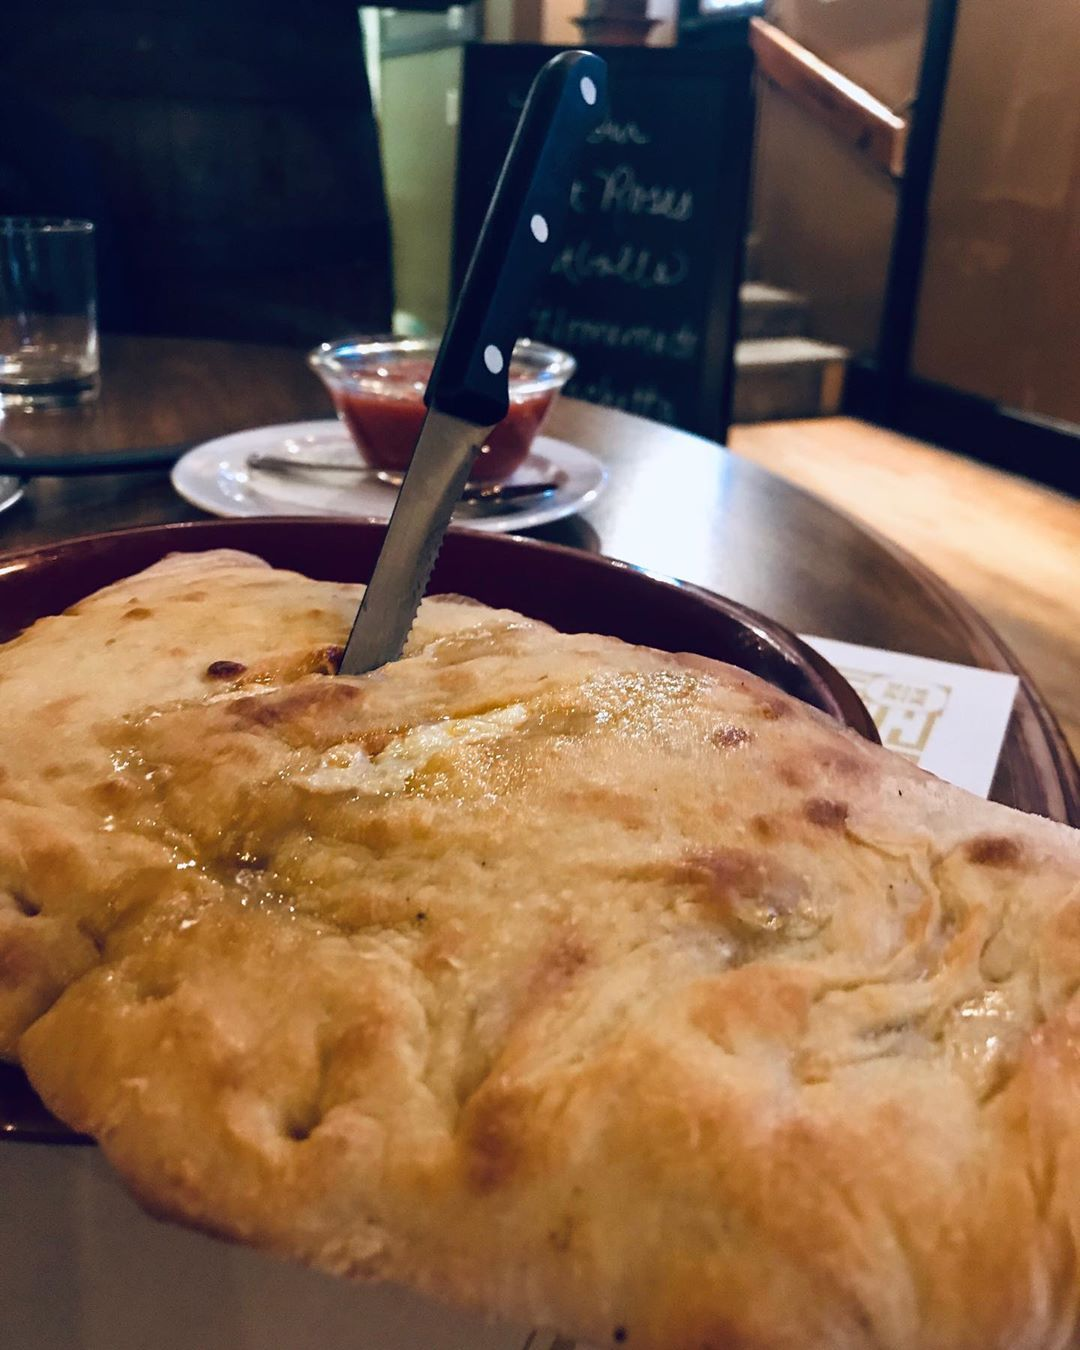 Its Friday . Come on in for dinner and have a homemade Stromboli, one of our traditional trays or a Mikes pie, a Charcuterie Board paired with your favorite Abruzzo wine or a Aunt Roses Homemade Meatball Appetizer. Open 3-10 for eat in or take out ....#pizza